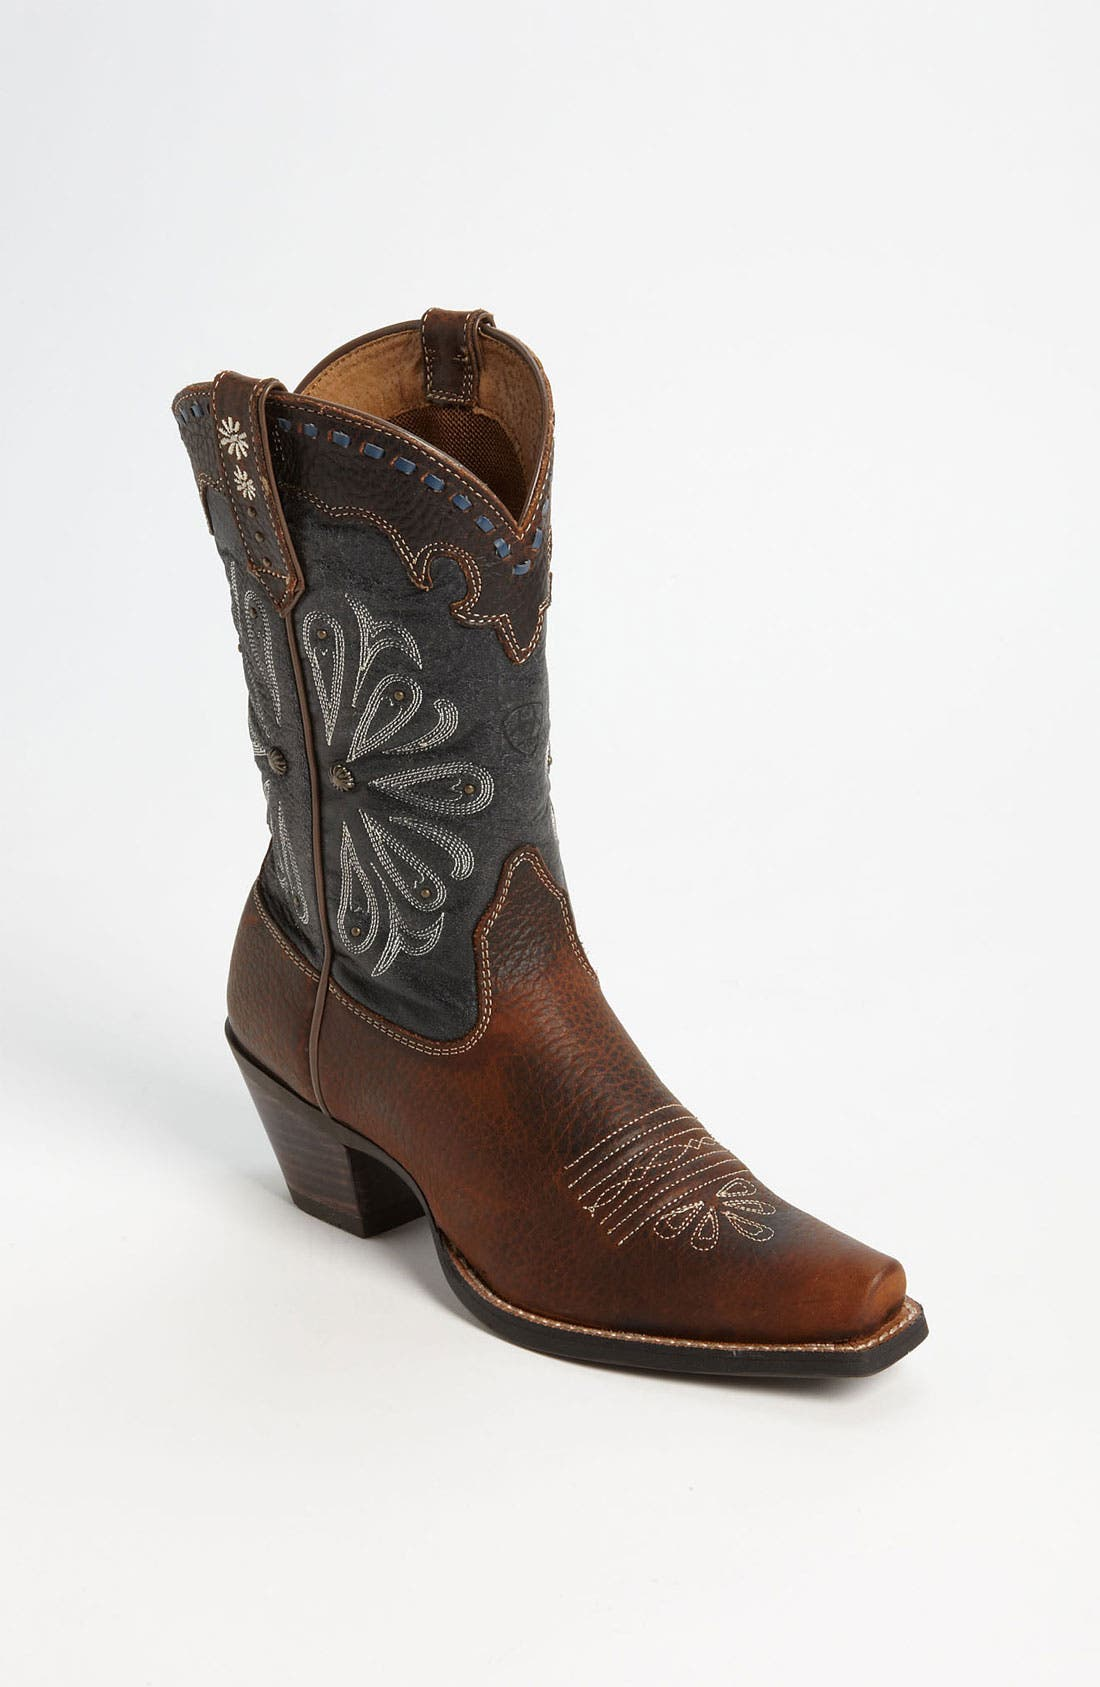 Alternate Image 1 Selected - Ariat 'Daisy' Boot (Online Only)